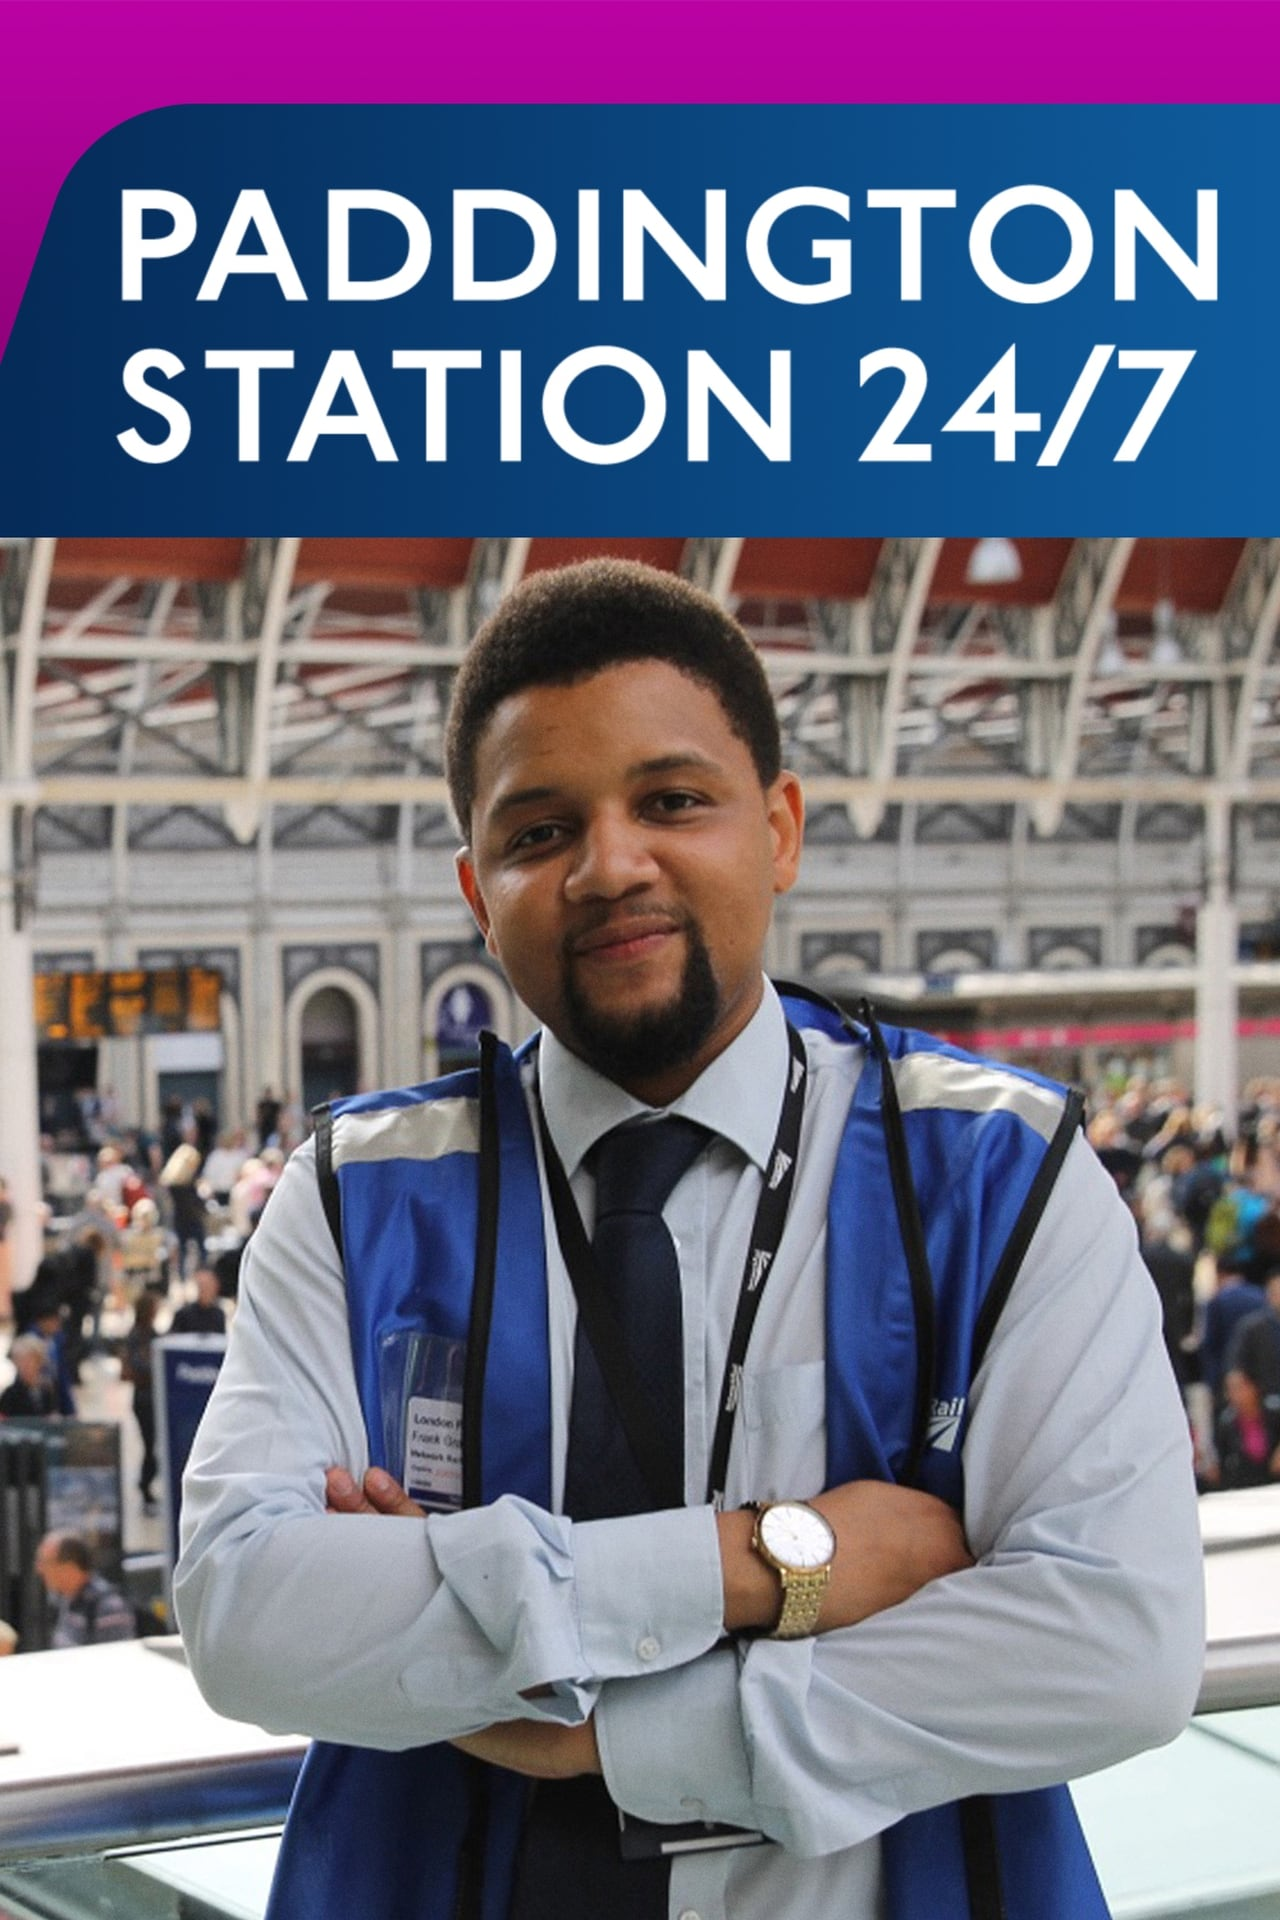 Putlocker Paddington Station 24/7 Season 1 (2017)